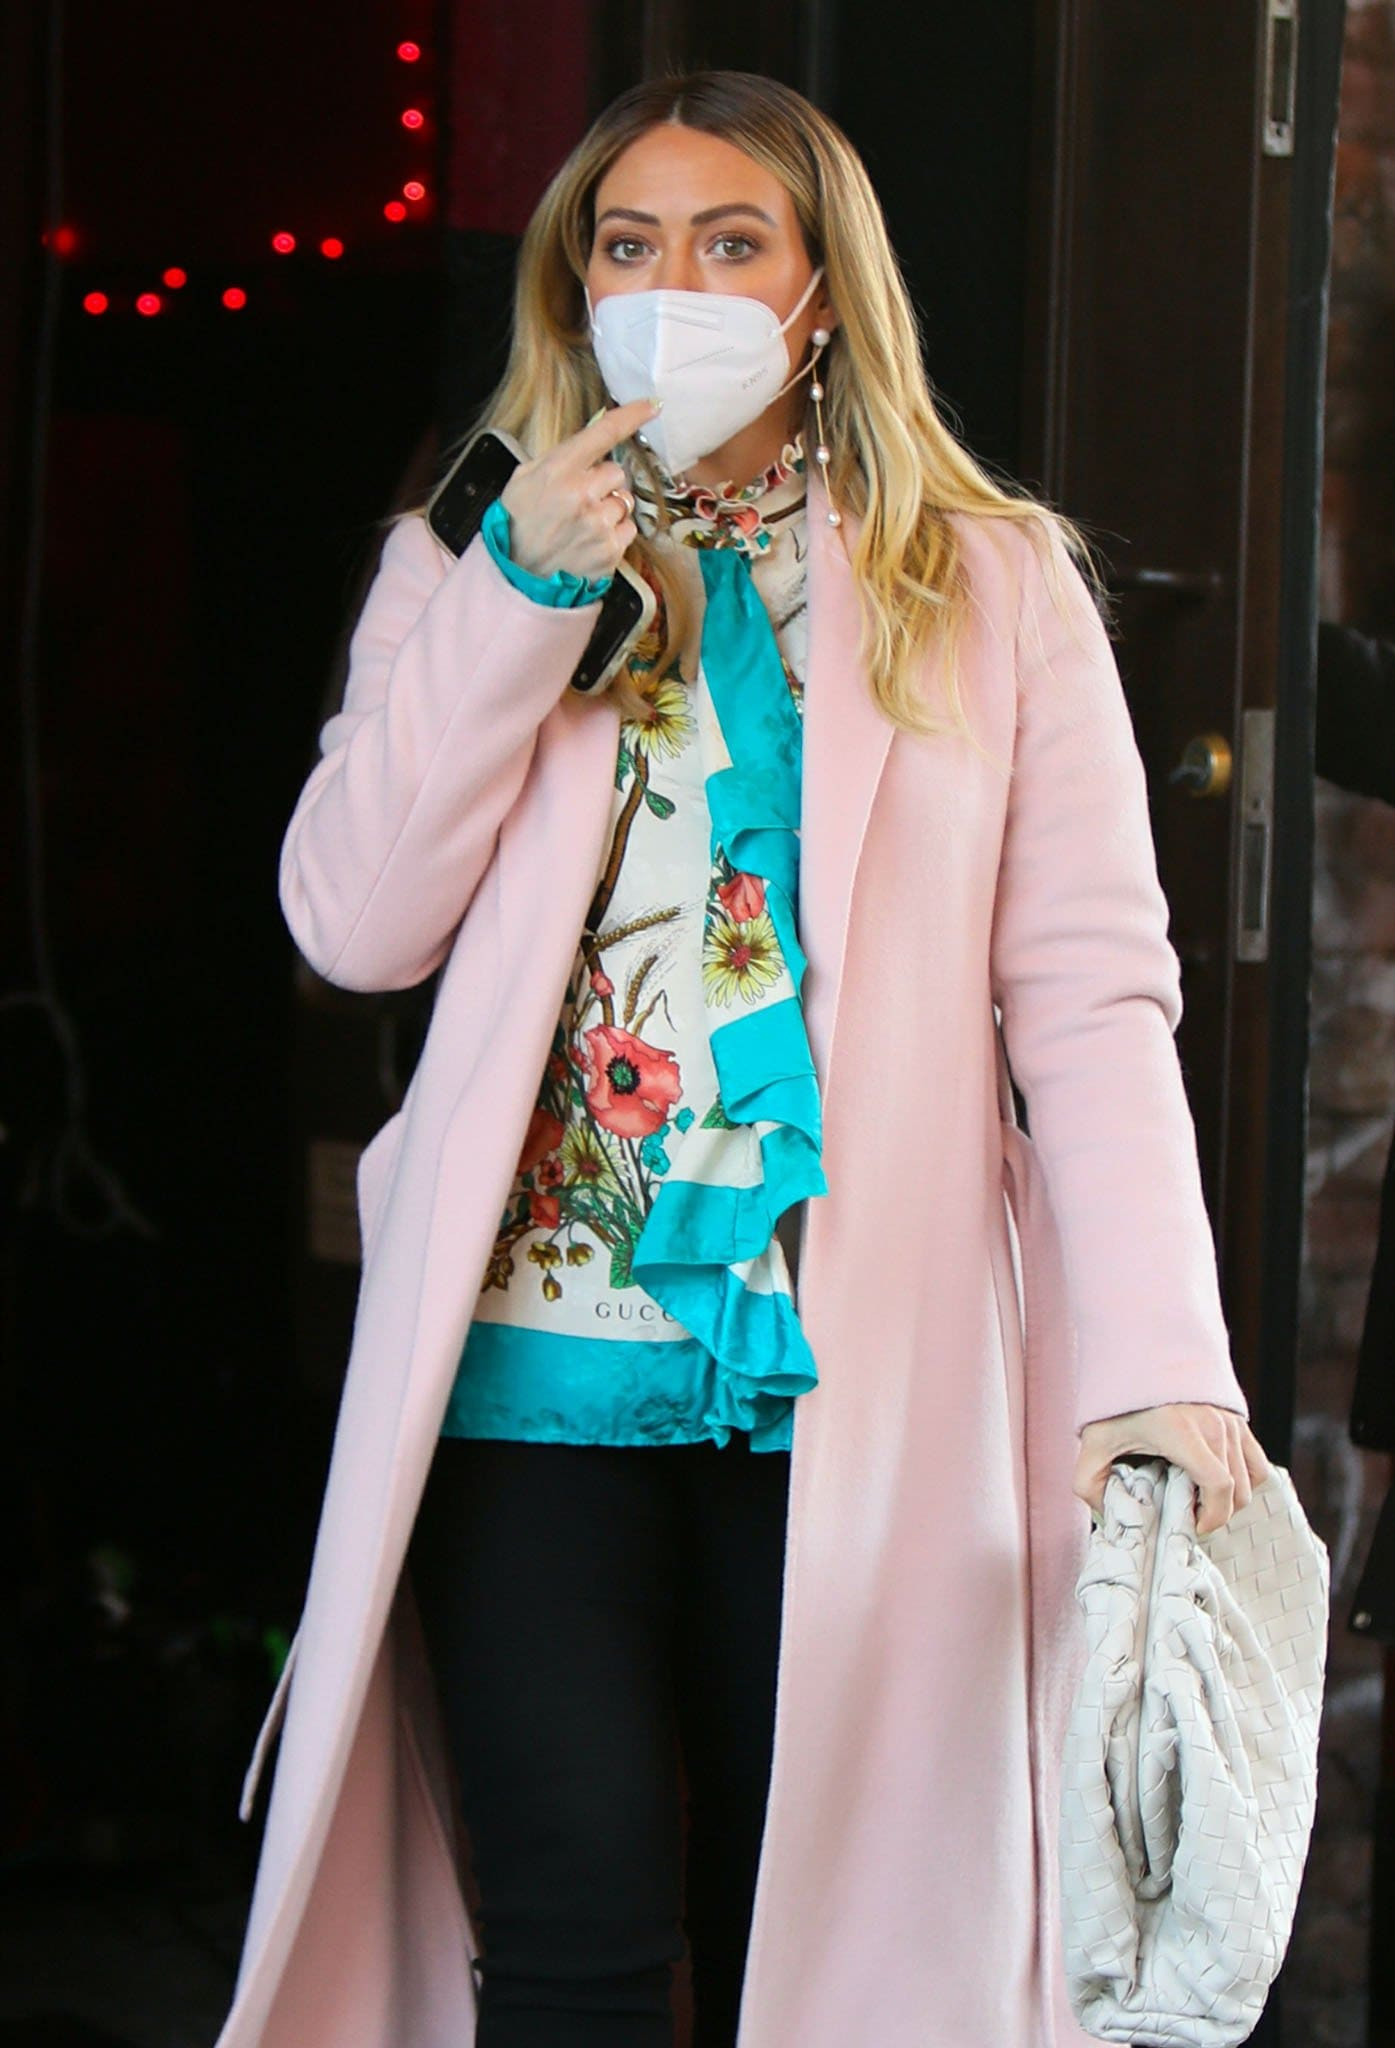 Hilary Duff styled her girly look with long pearl earrings and Bottega Veneta pouch